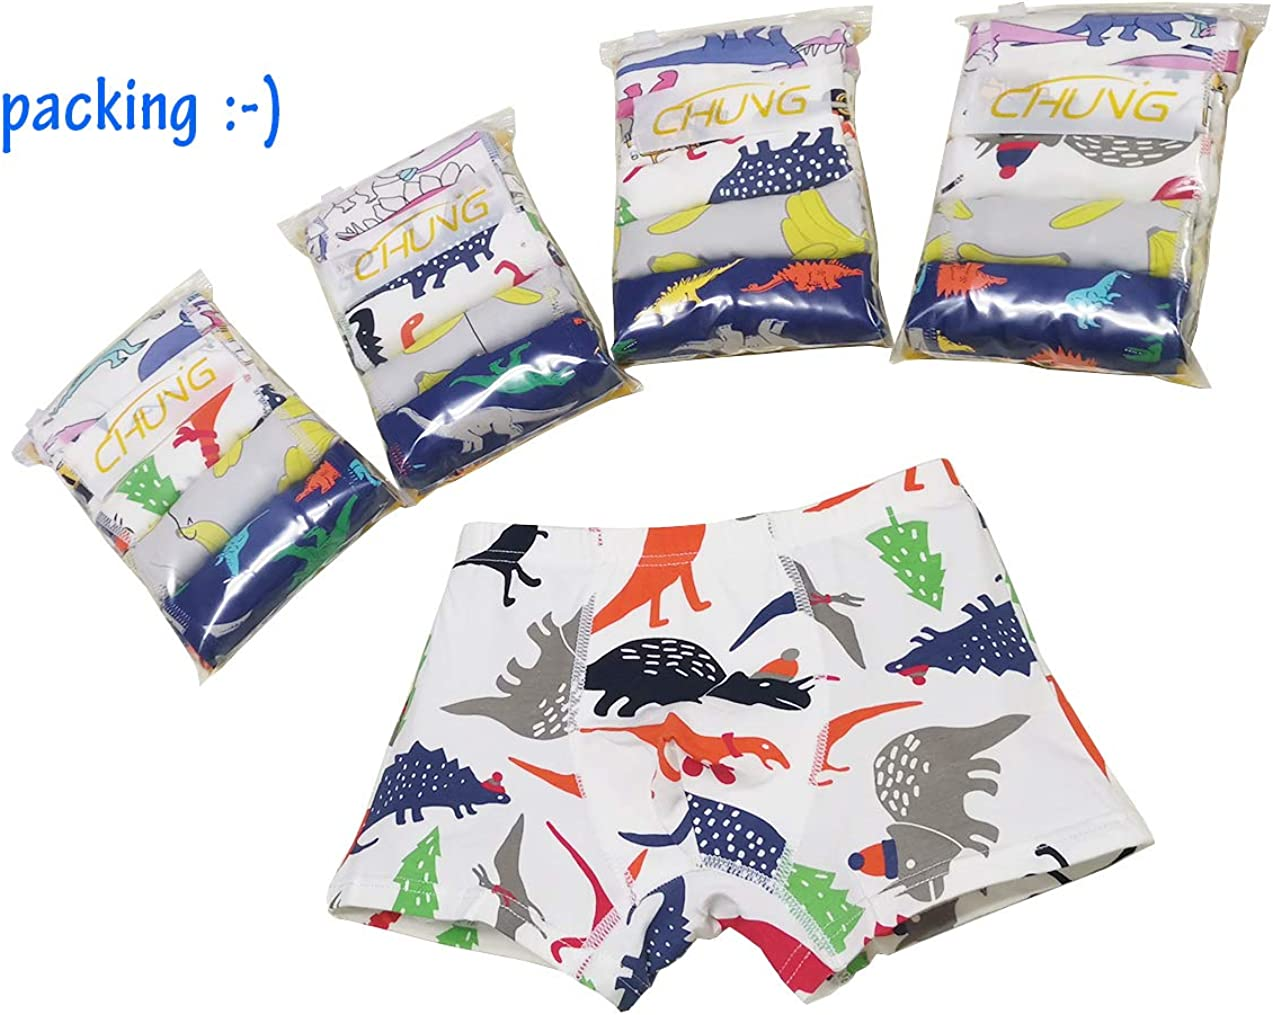 CHUNG Toddler Little Big Boys Underwear Pack of 5//10 Cotton Breathable Boxer Briefs Dinosaur 3-9Y